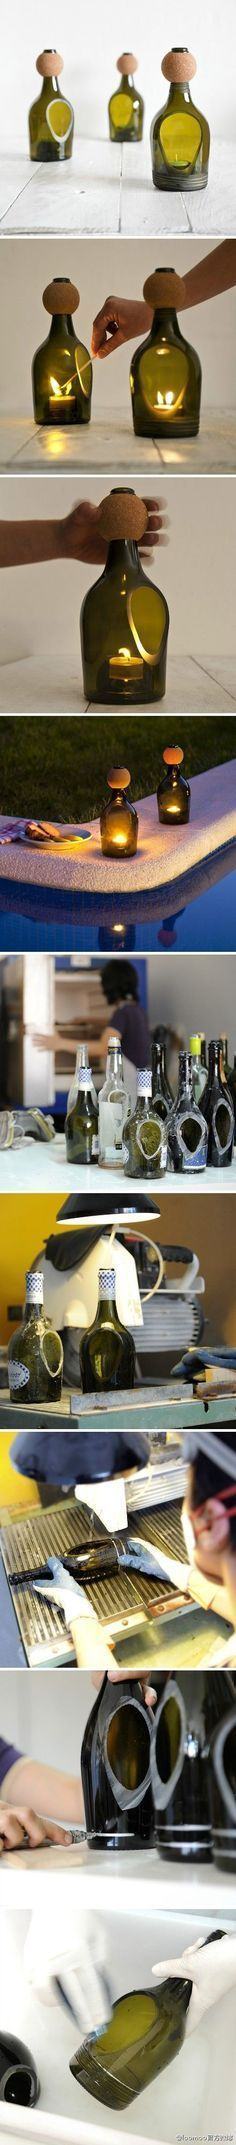 You find that there are many old wine bottles at home. Please wait before you throw them away! Collect all these old bottles and create some bottle light for yo